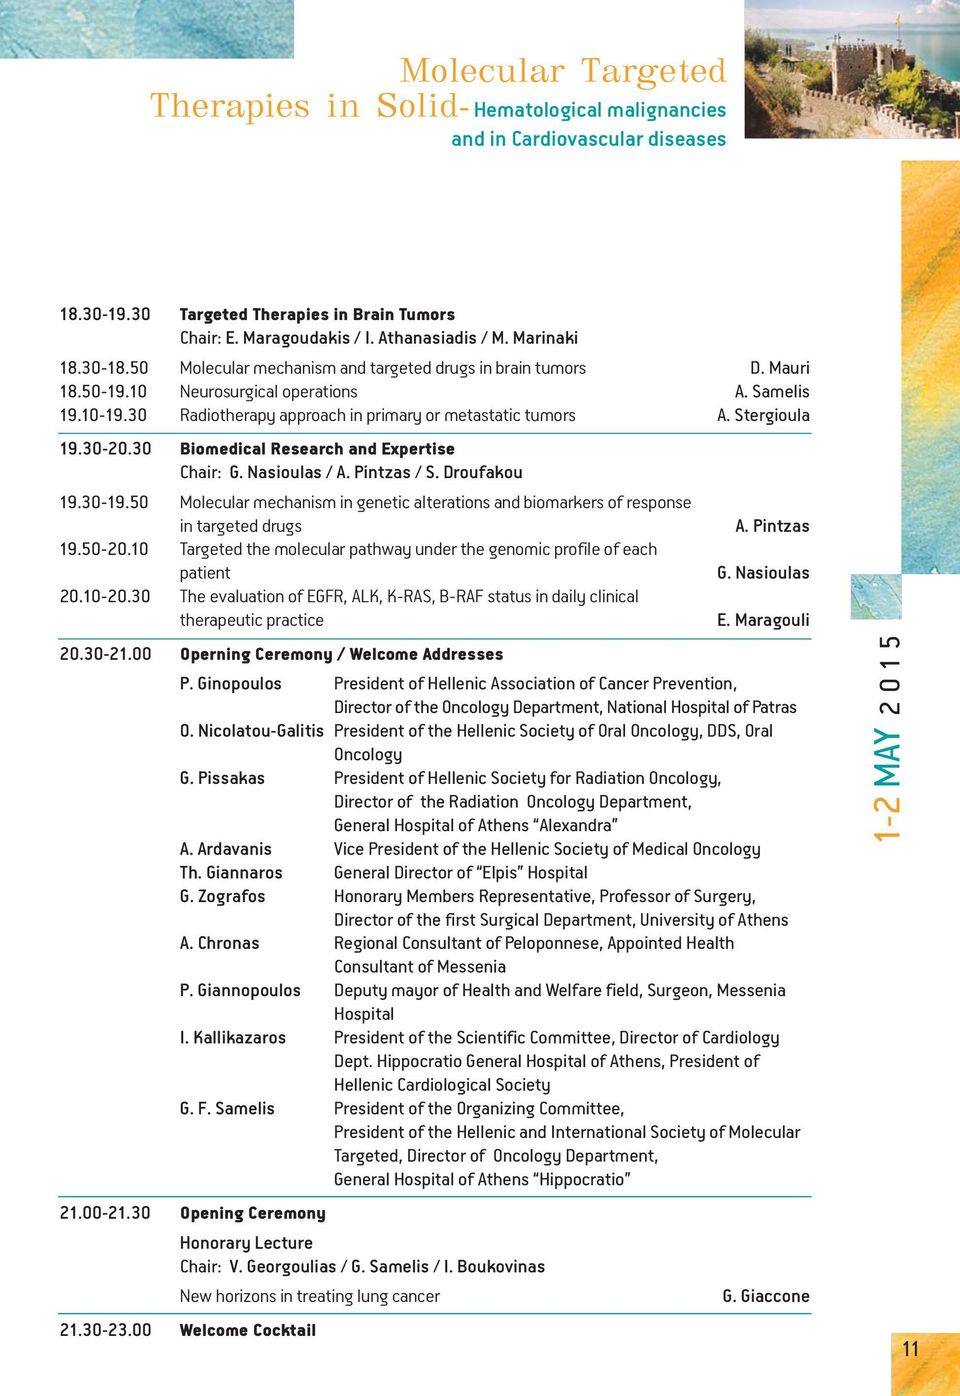 30 Radiotherapy approach in primary or metastatic tumors Α. Stergioula 19.30-20.30 Biomedical Research and Expertise Chair: G. Nasioulas / A. Pintzas / S. Droufakou 19.30-19.